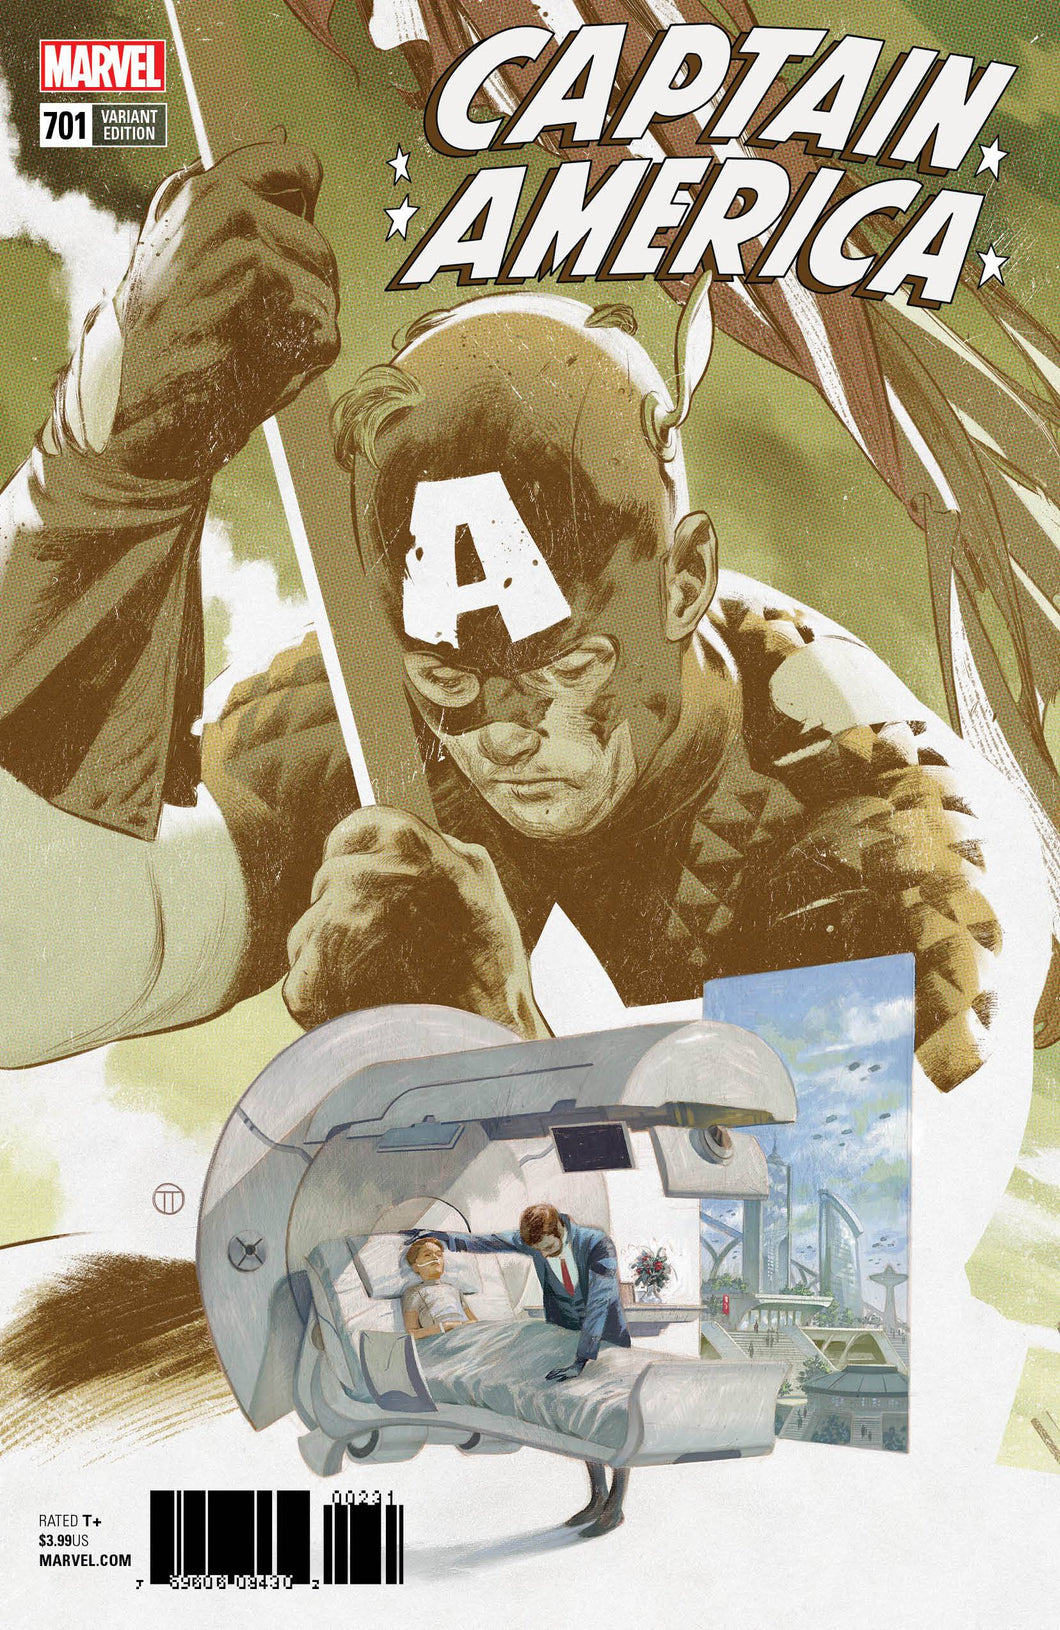 CAPTAIN AMERICA #701 TEDESCO CONNECTING VAR